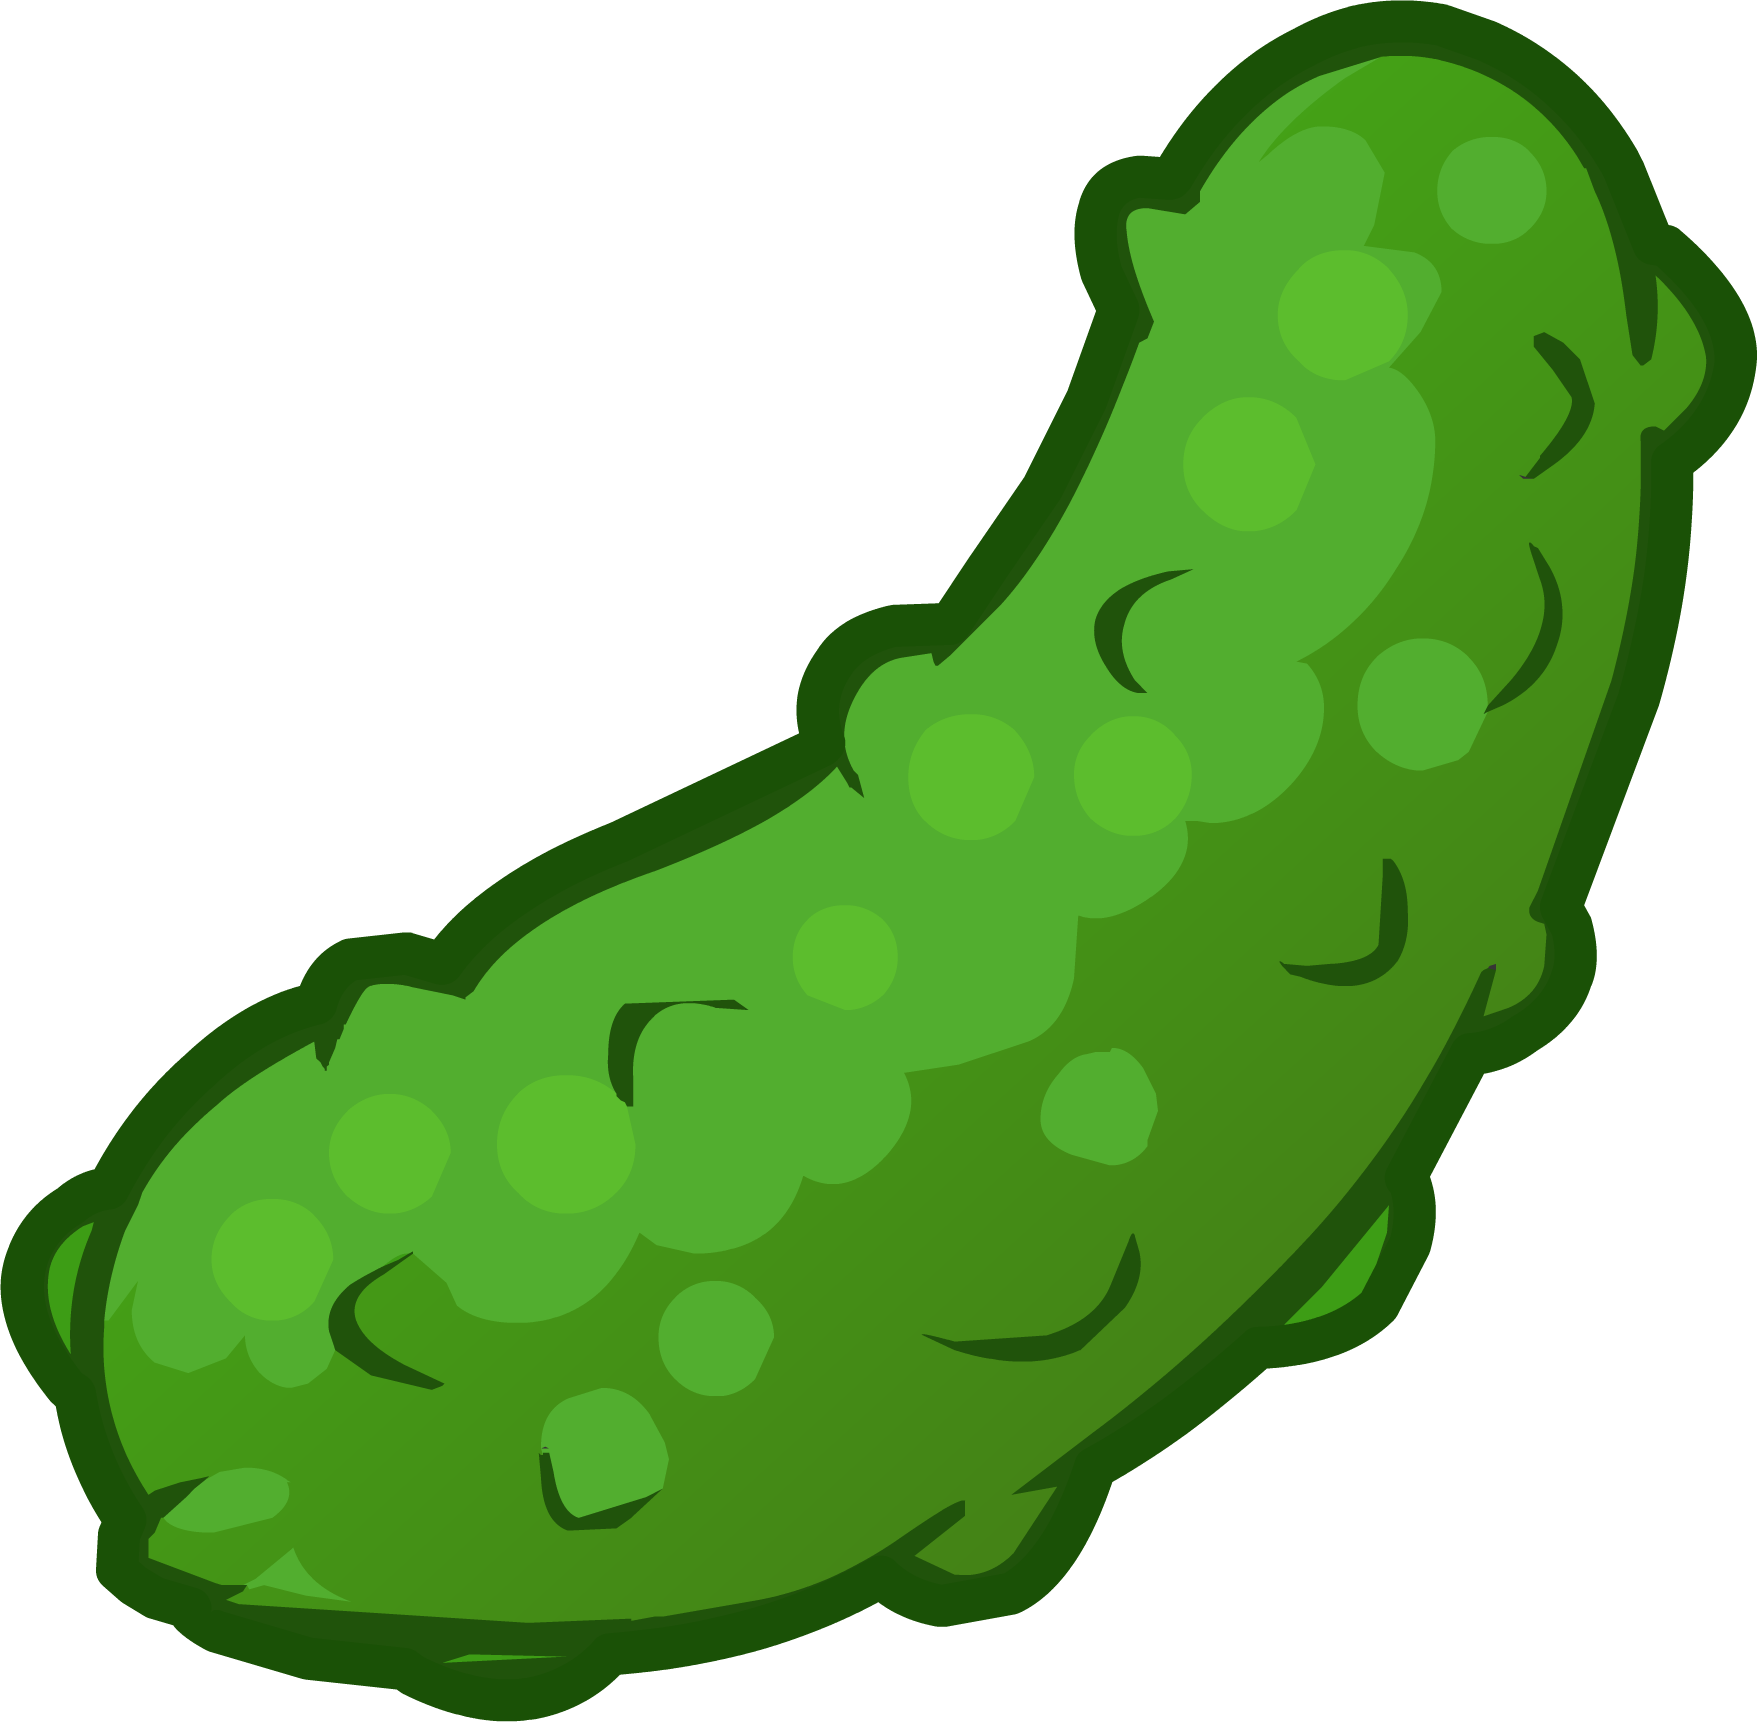 Pickle Slice Coloring Page - 2018 images & pictures - Pickle ...